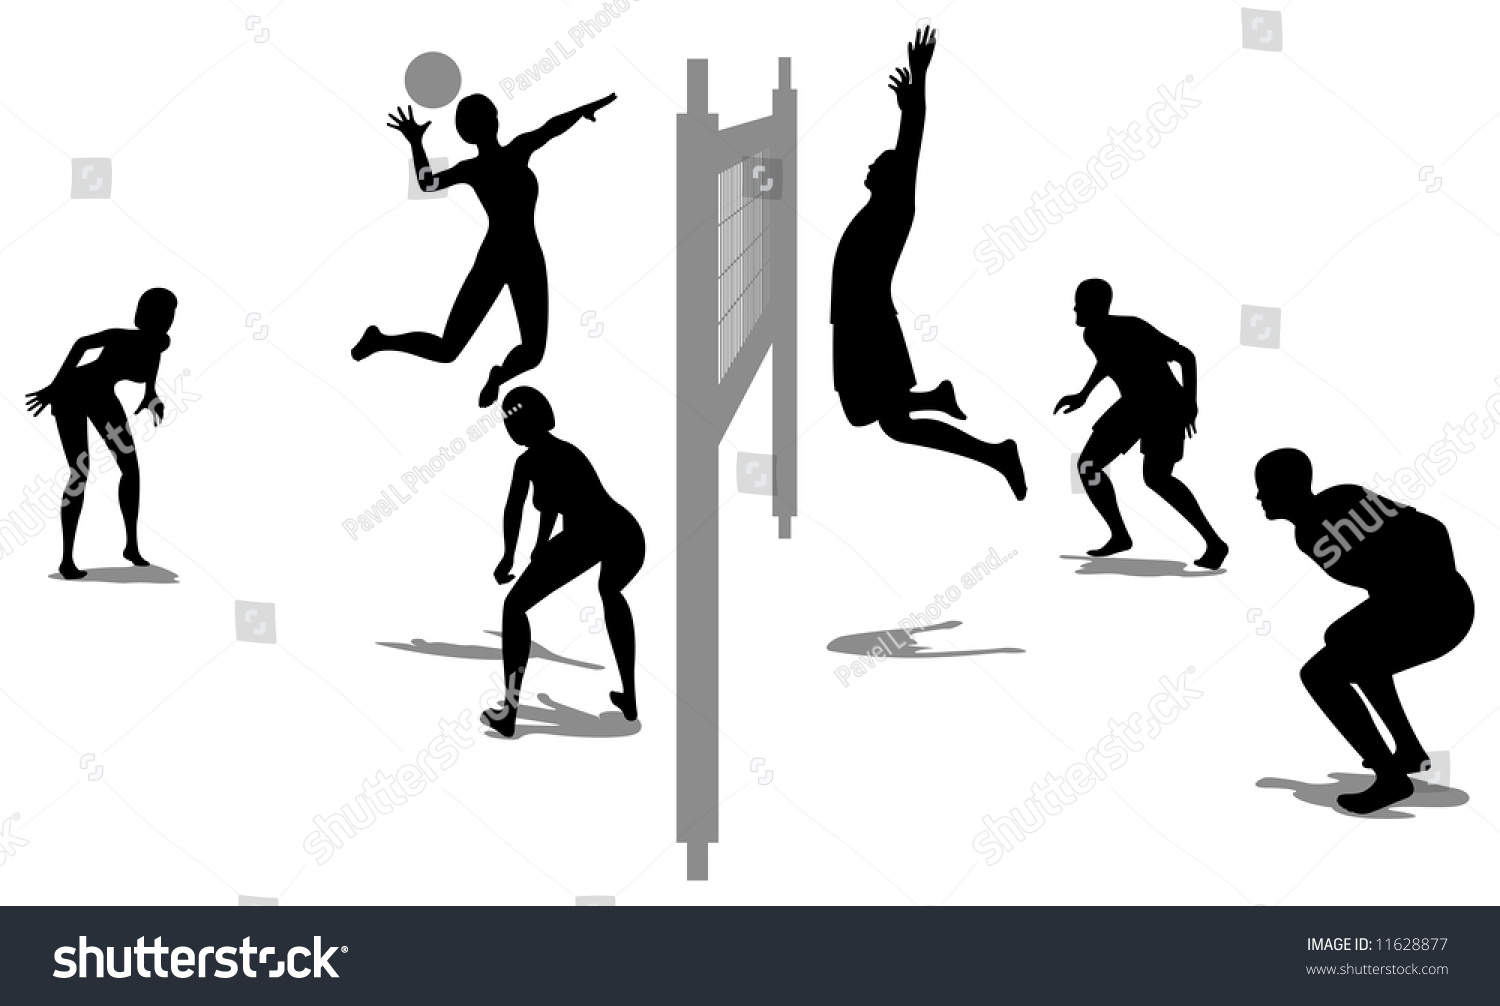 Volleyball Game Silhouette Vector 3